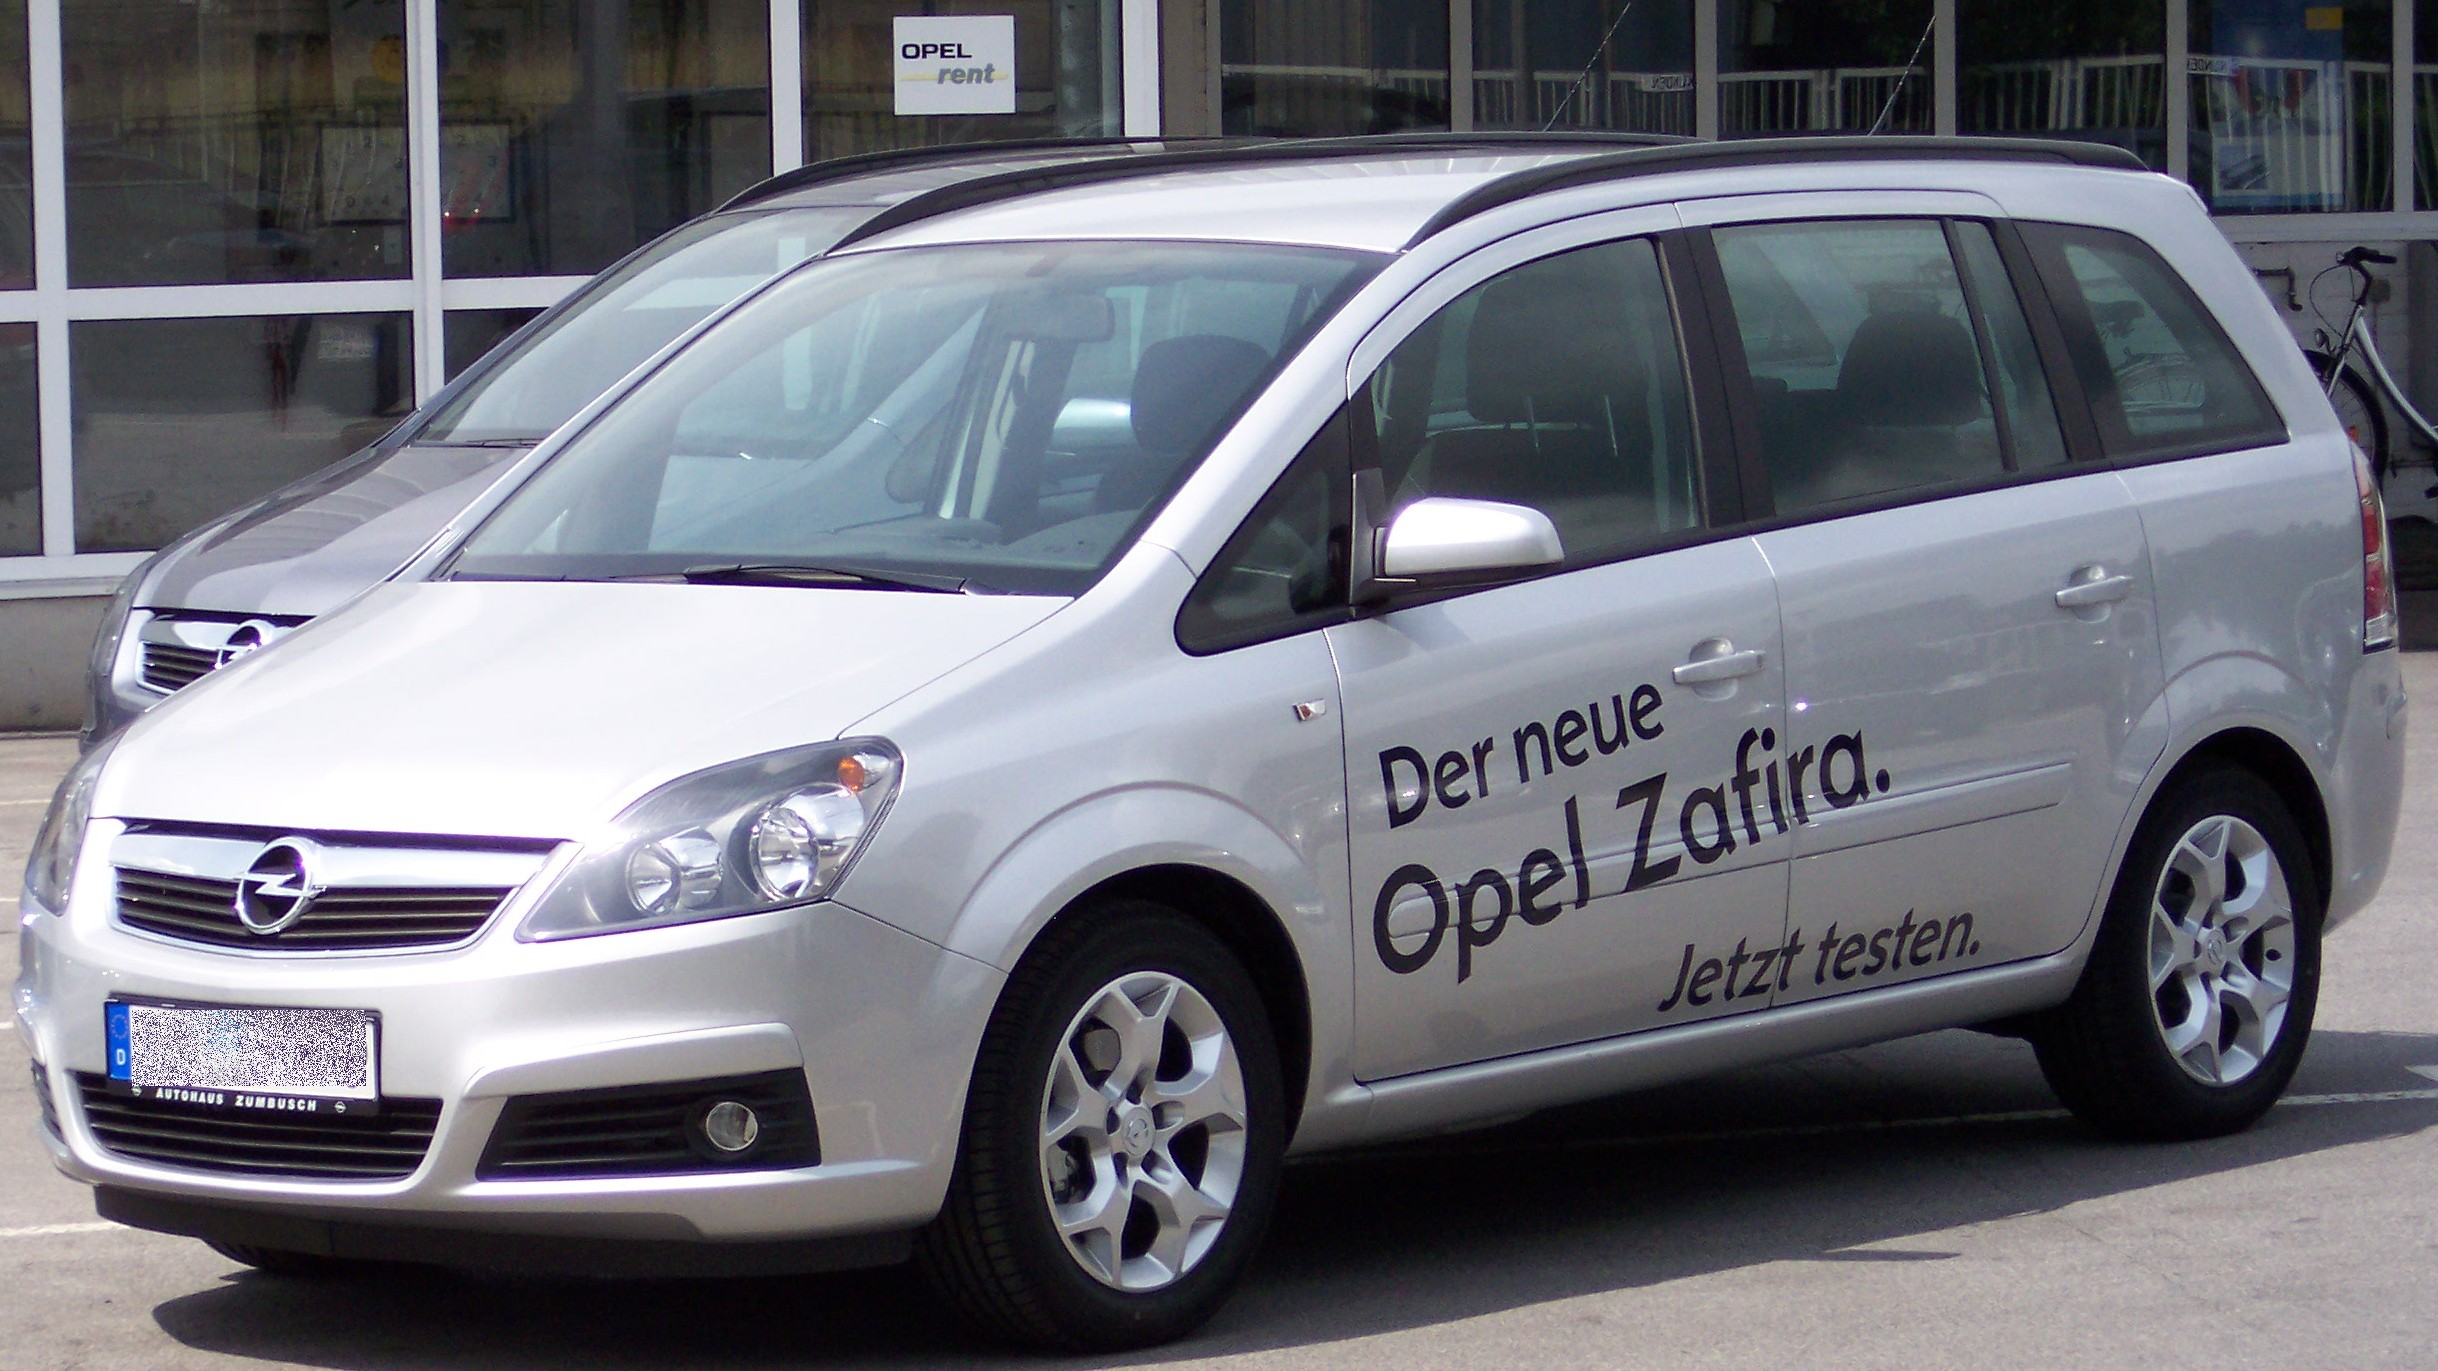 world top cars opel zafira van. Black Bedroom Furniture Sets. Home Design Ideas